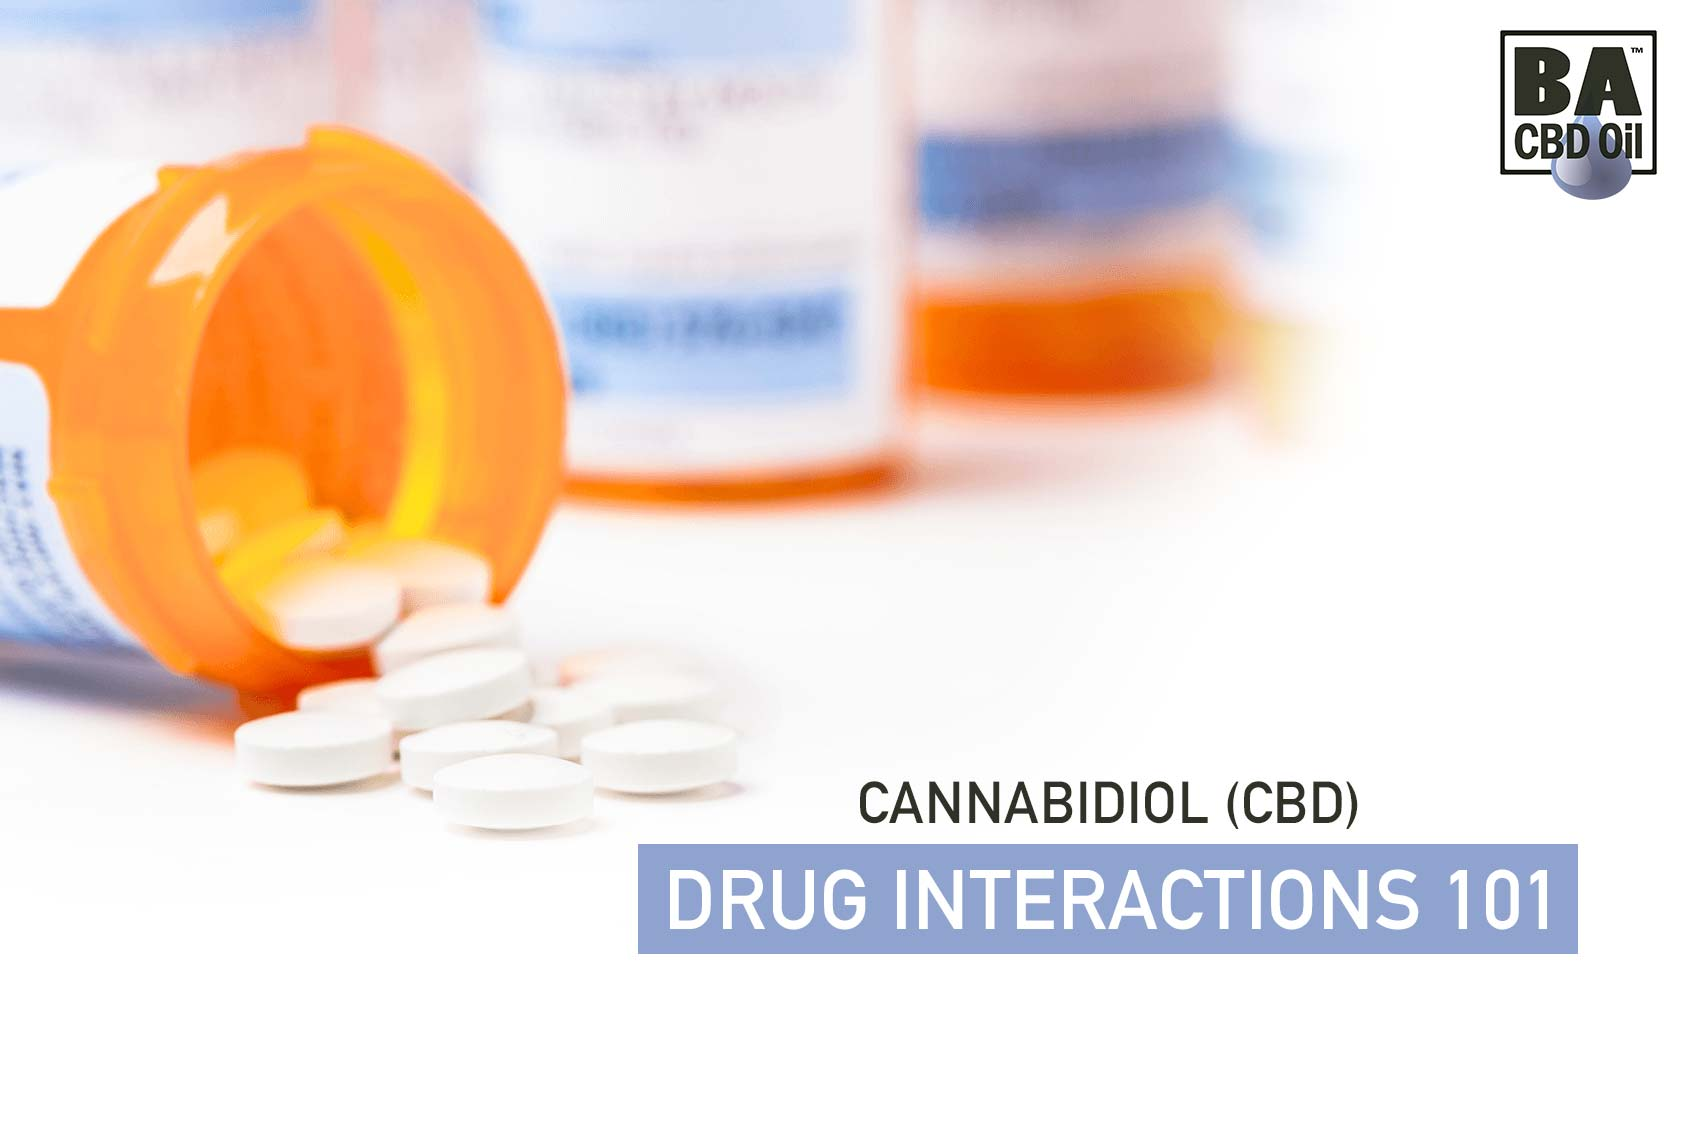 Cannabidiol Drug Interactions